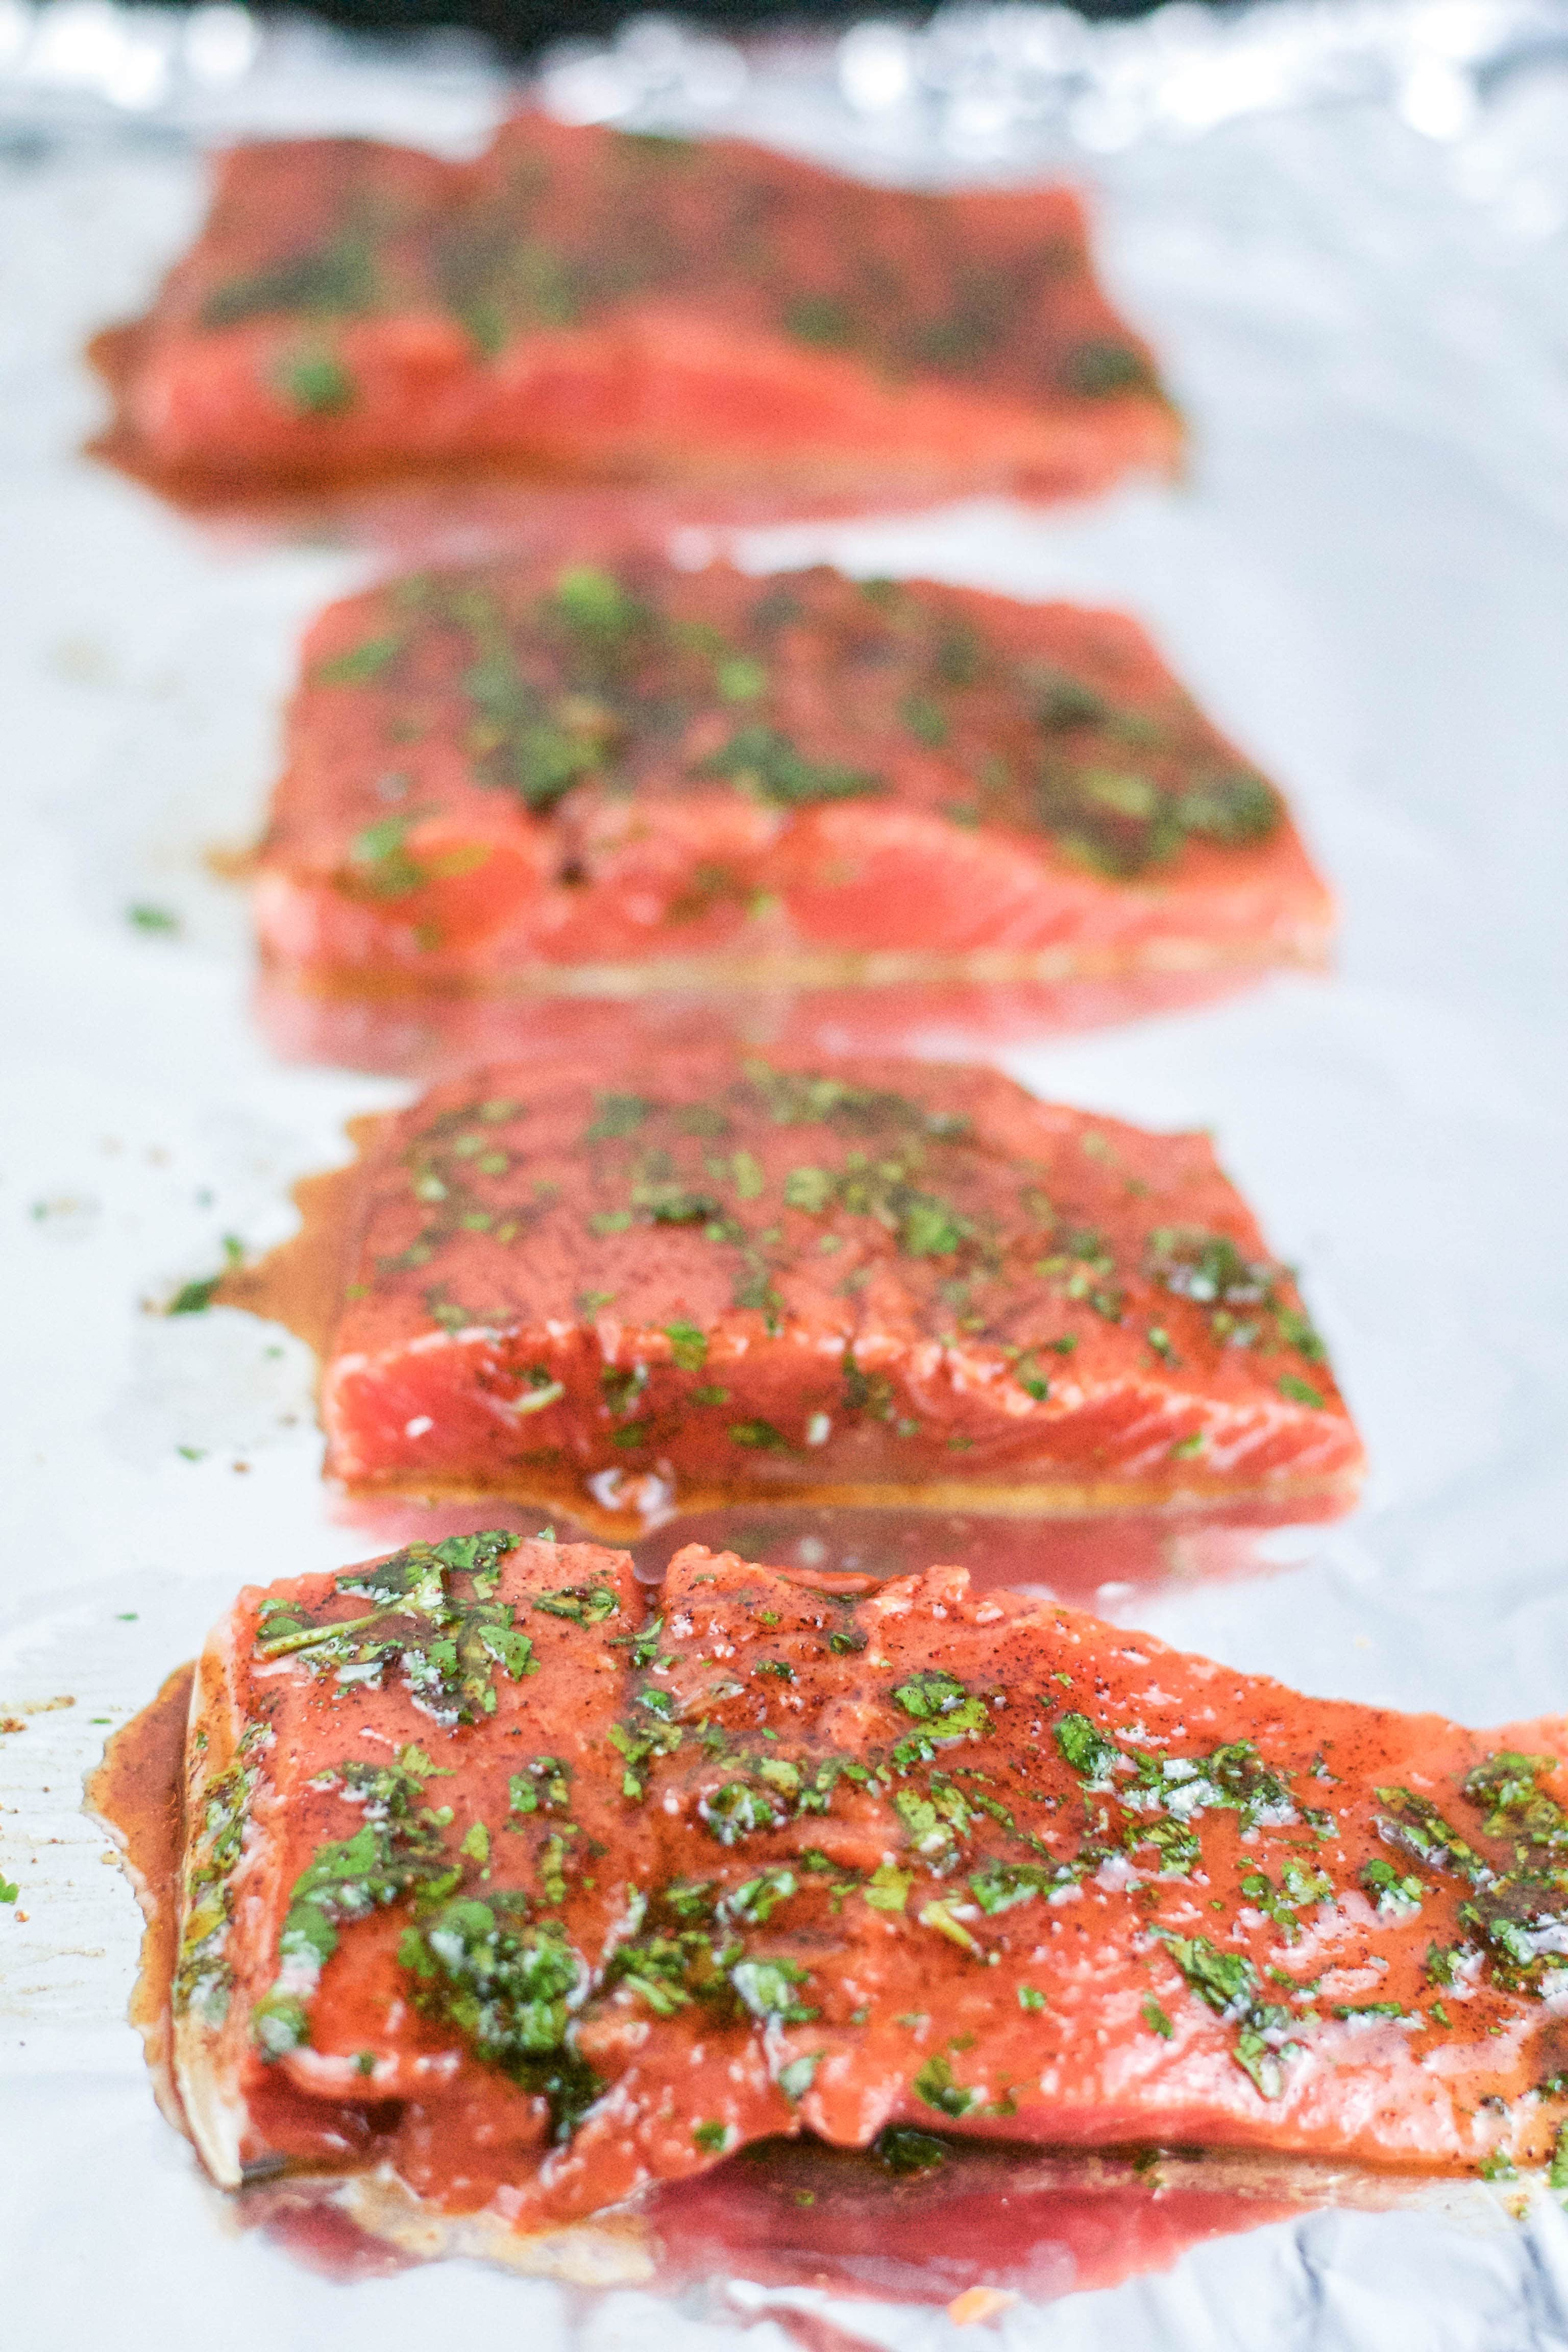 Raw salmon portions with cilantro and honey glaze on a baking sheet lined with aluminum foil.